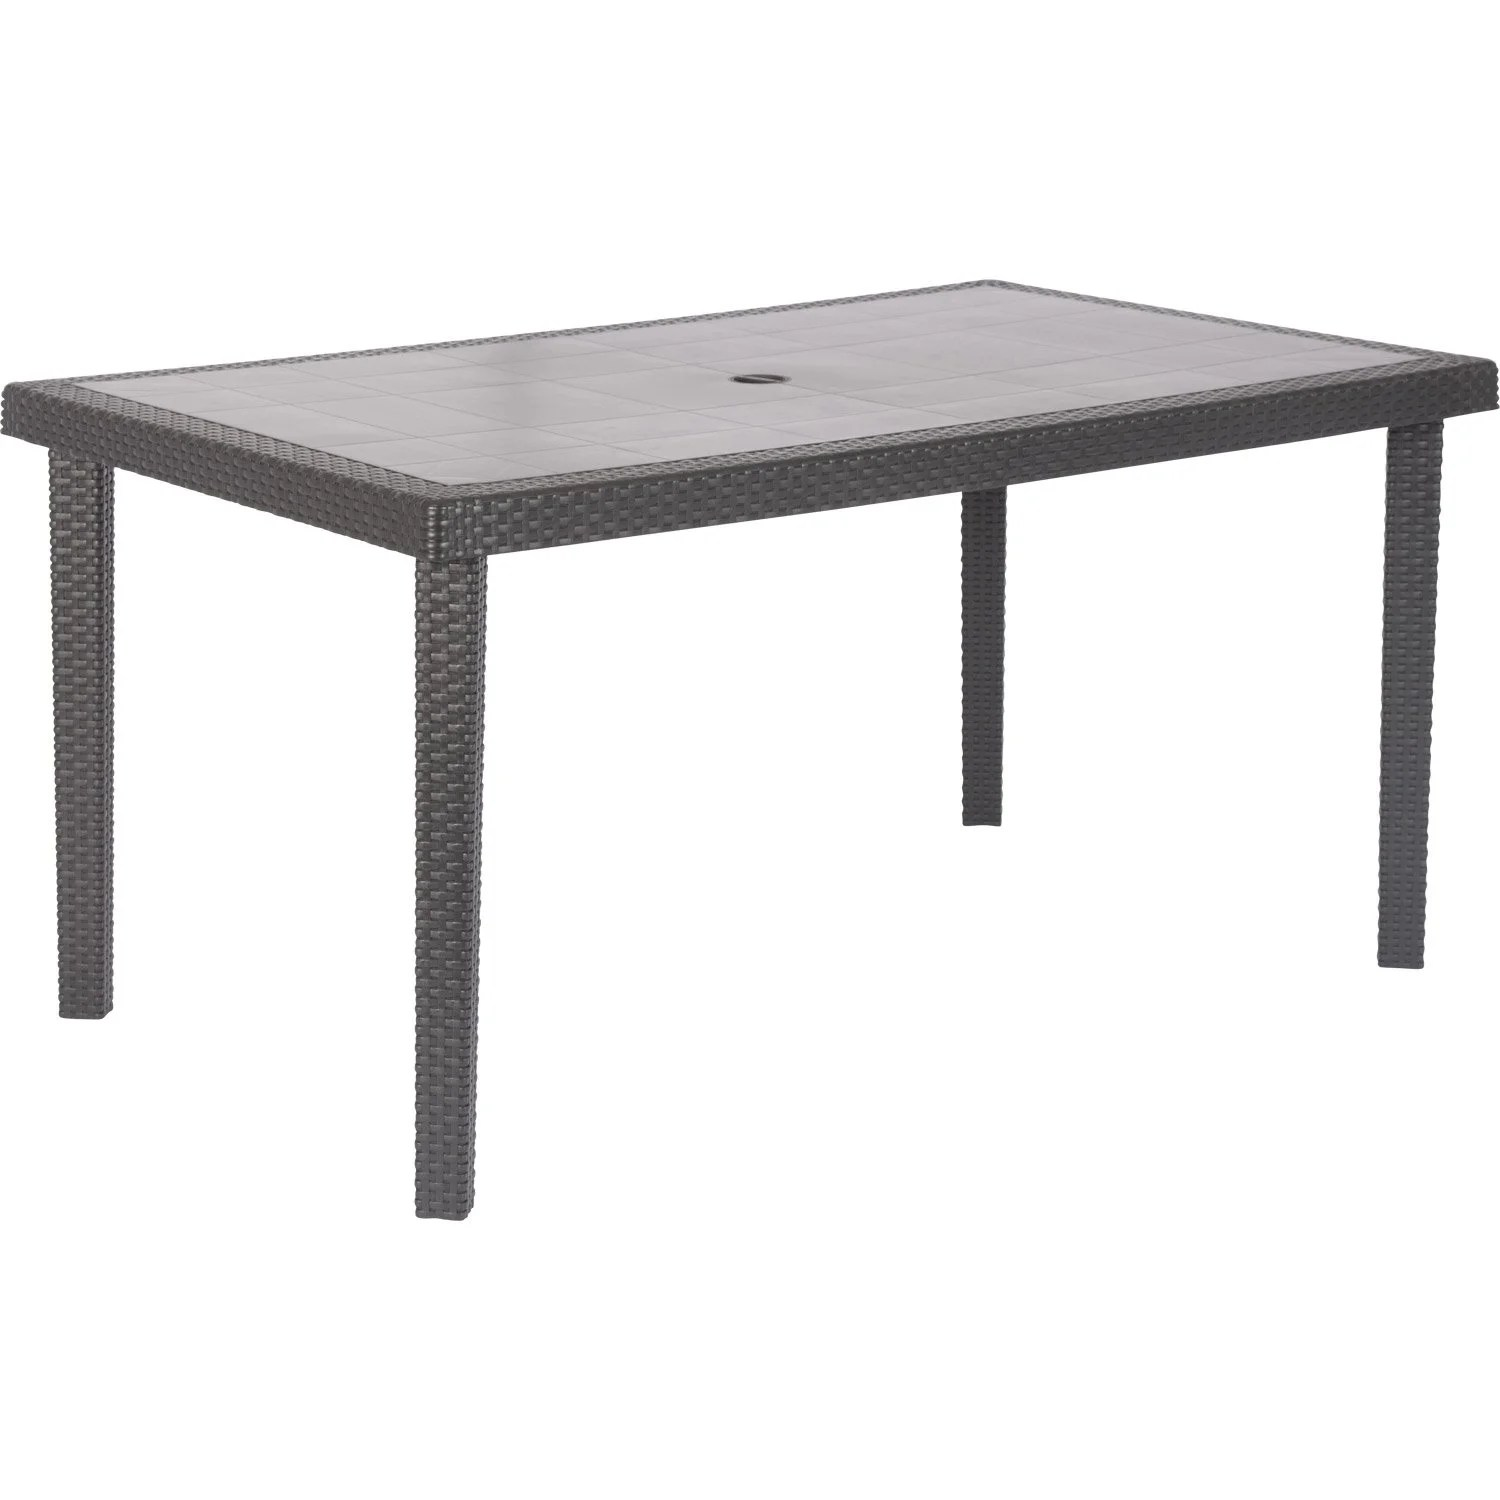 Table De Jardin Table De Jardin Bohème Rectangulaire Anthracite 6